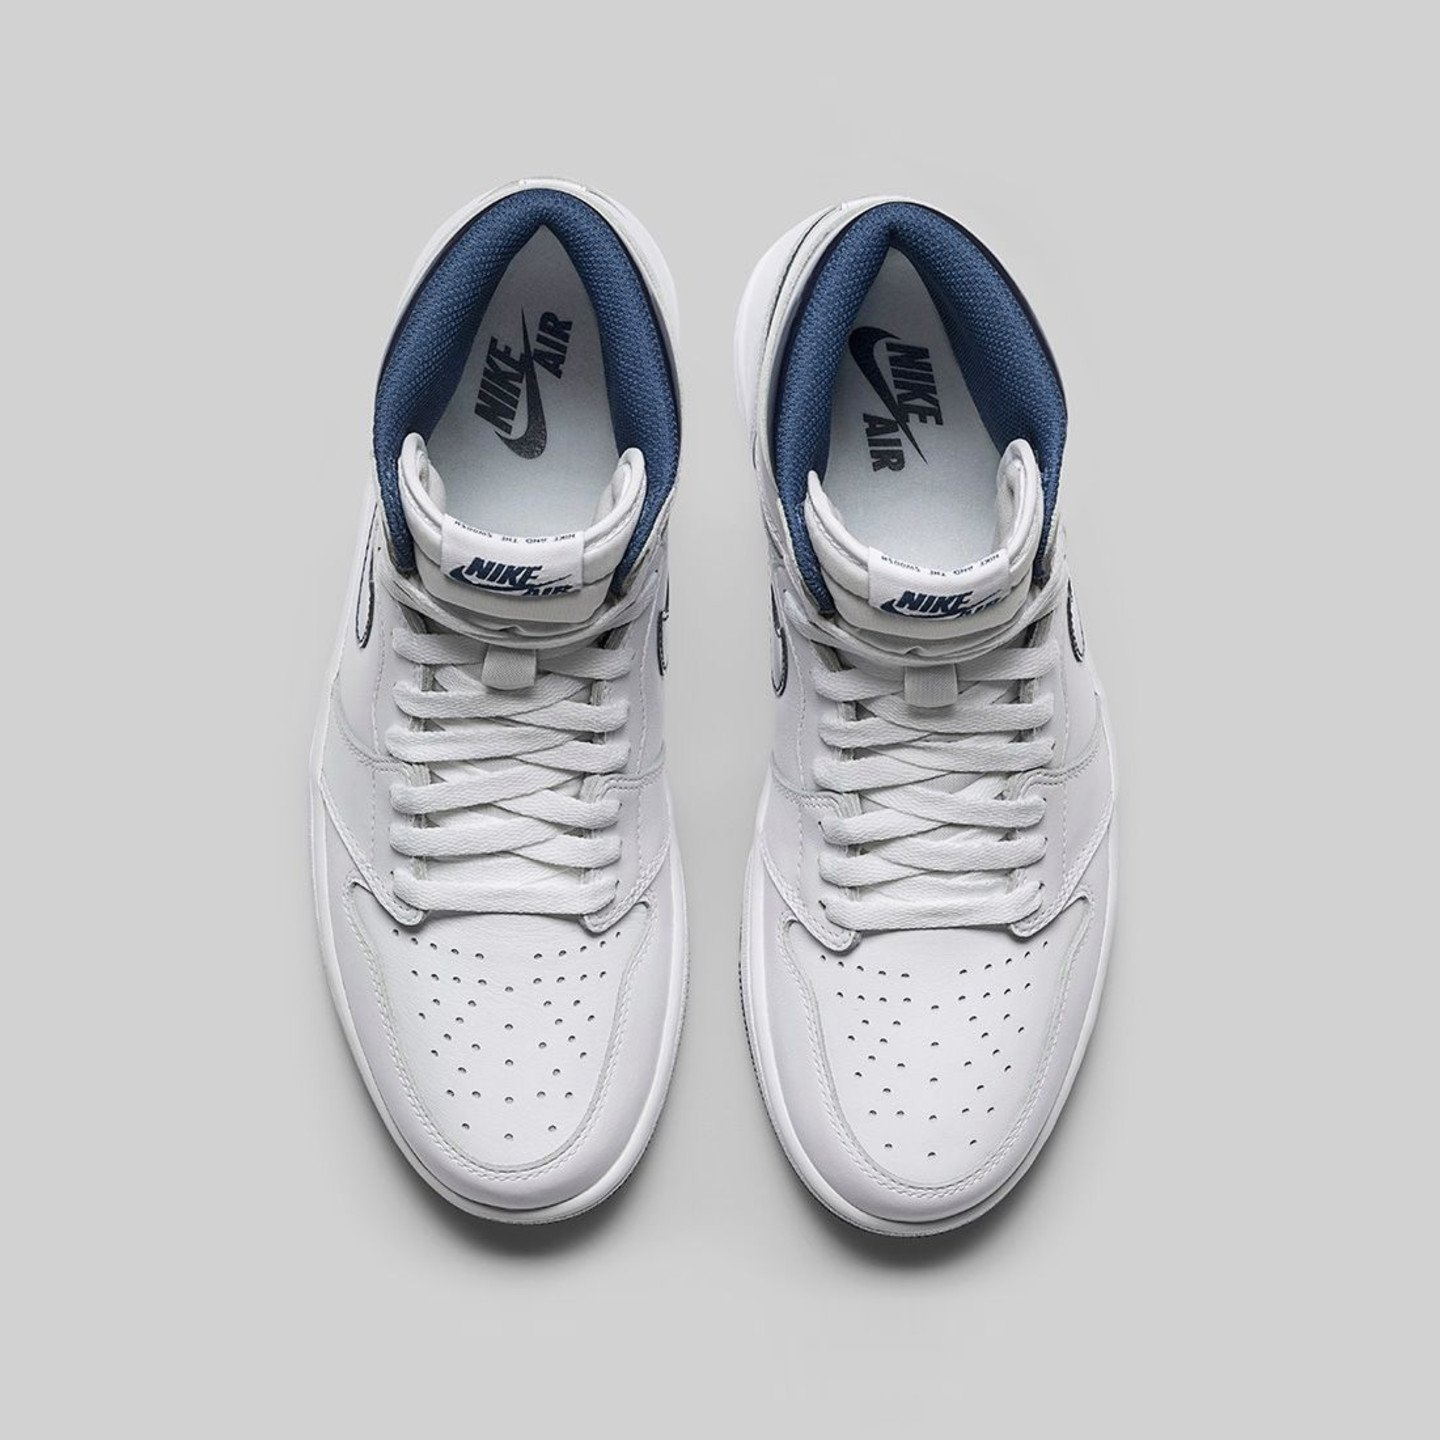 Jordan Air Jordan 1 Retro High OG 'Metallic Navy' White / Midnight Navy 555088-106-44